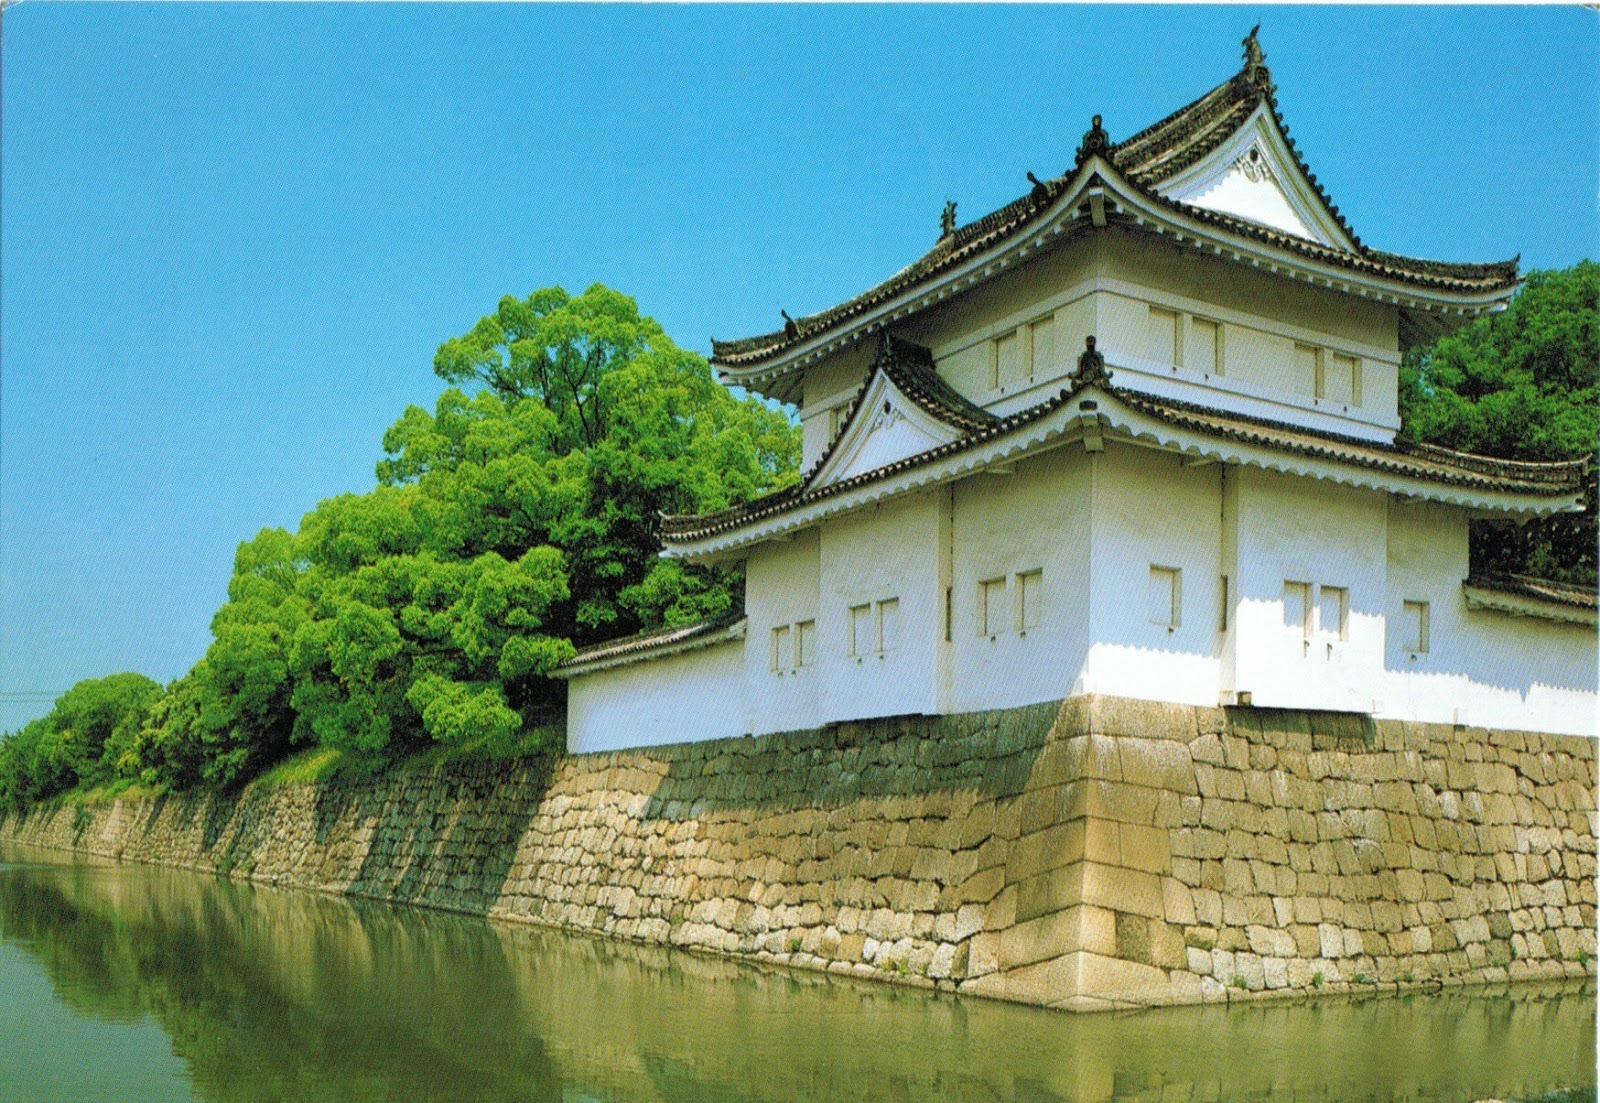 Nijo-jo Castle in Kyoto (Japan)  Jonathans PHILATELY blog